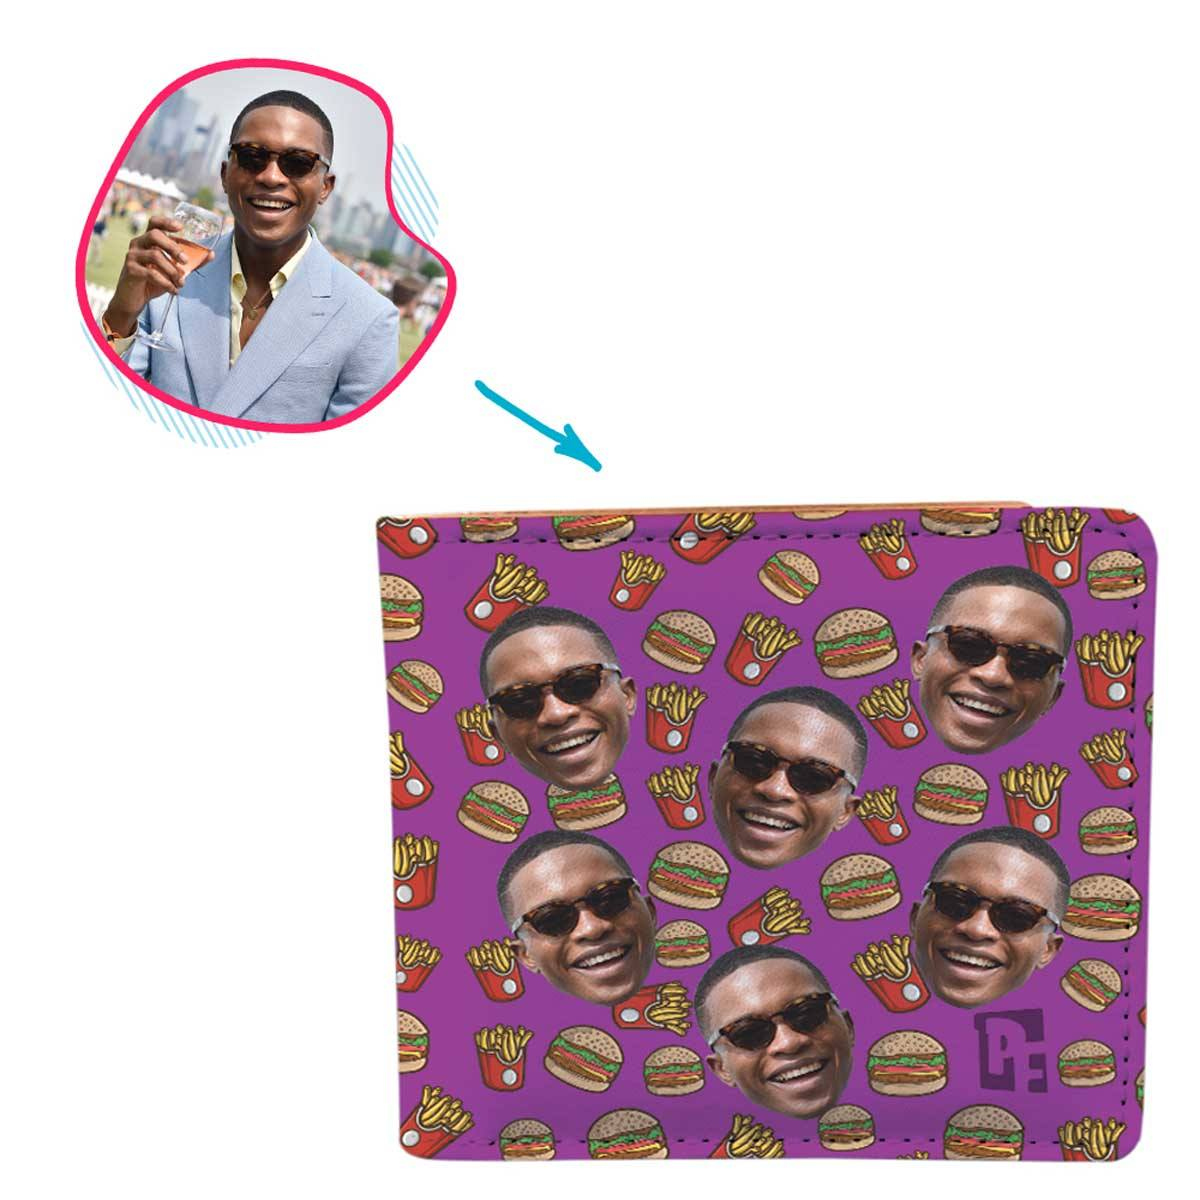 purple Fastfood wallet personalized with photo of face printed on it